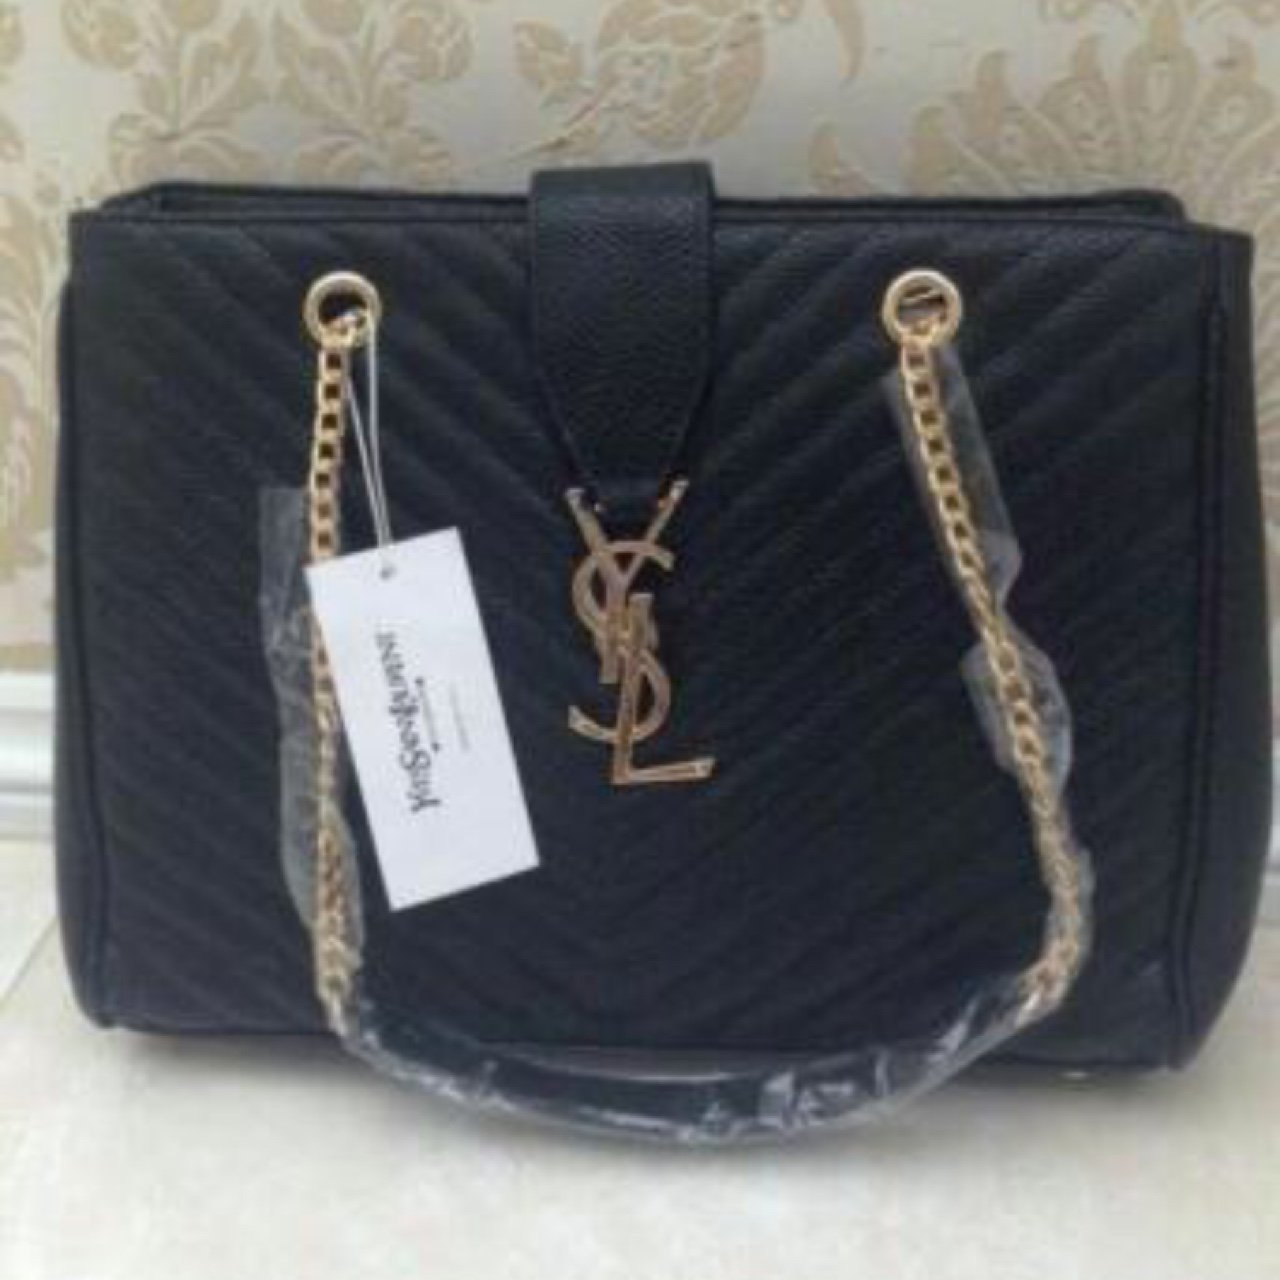 e236ec75a0 @zoeyyyy. 3 years ago. Manchester, UK. Ysl bag in black with gold ...